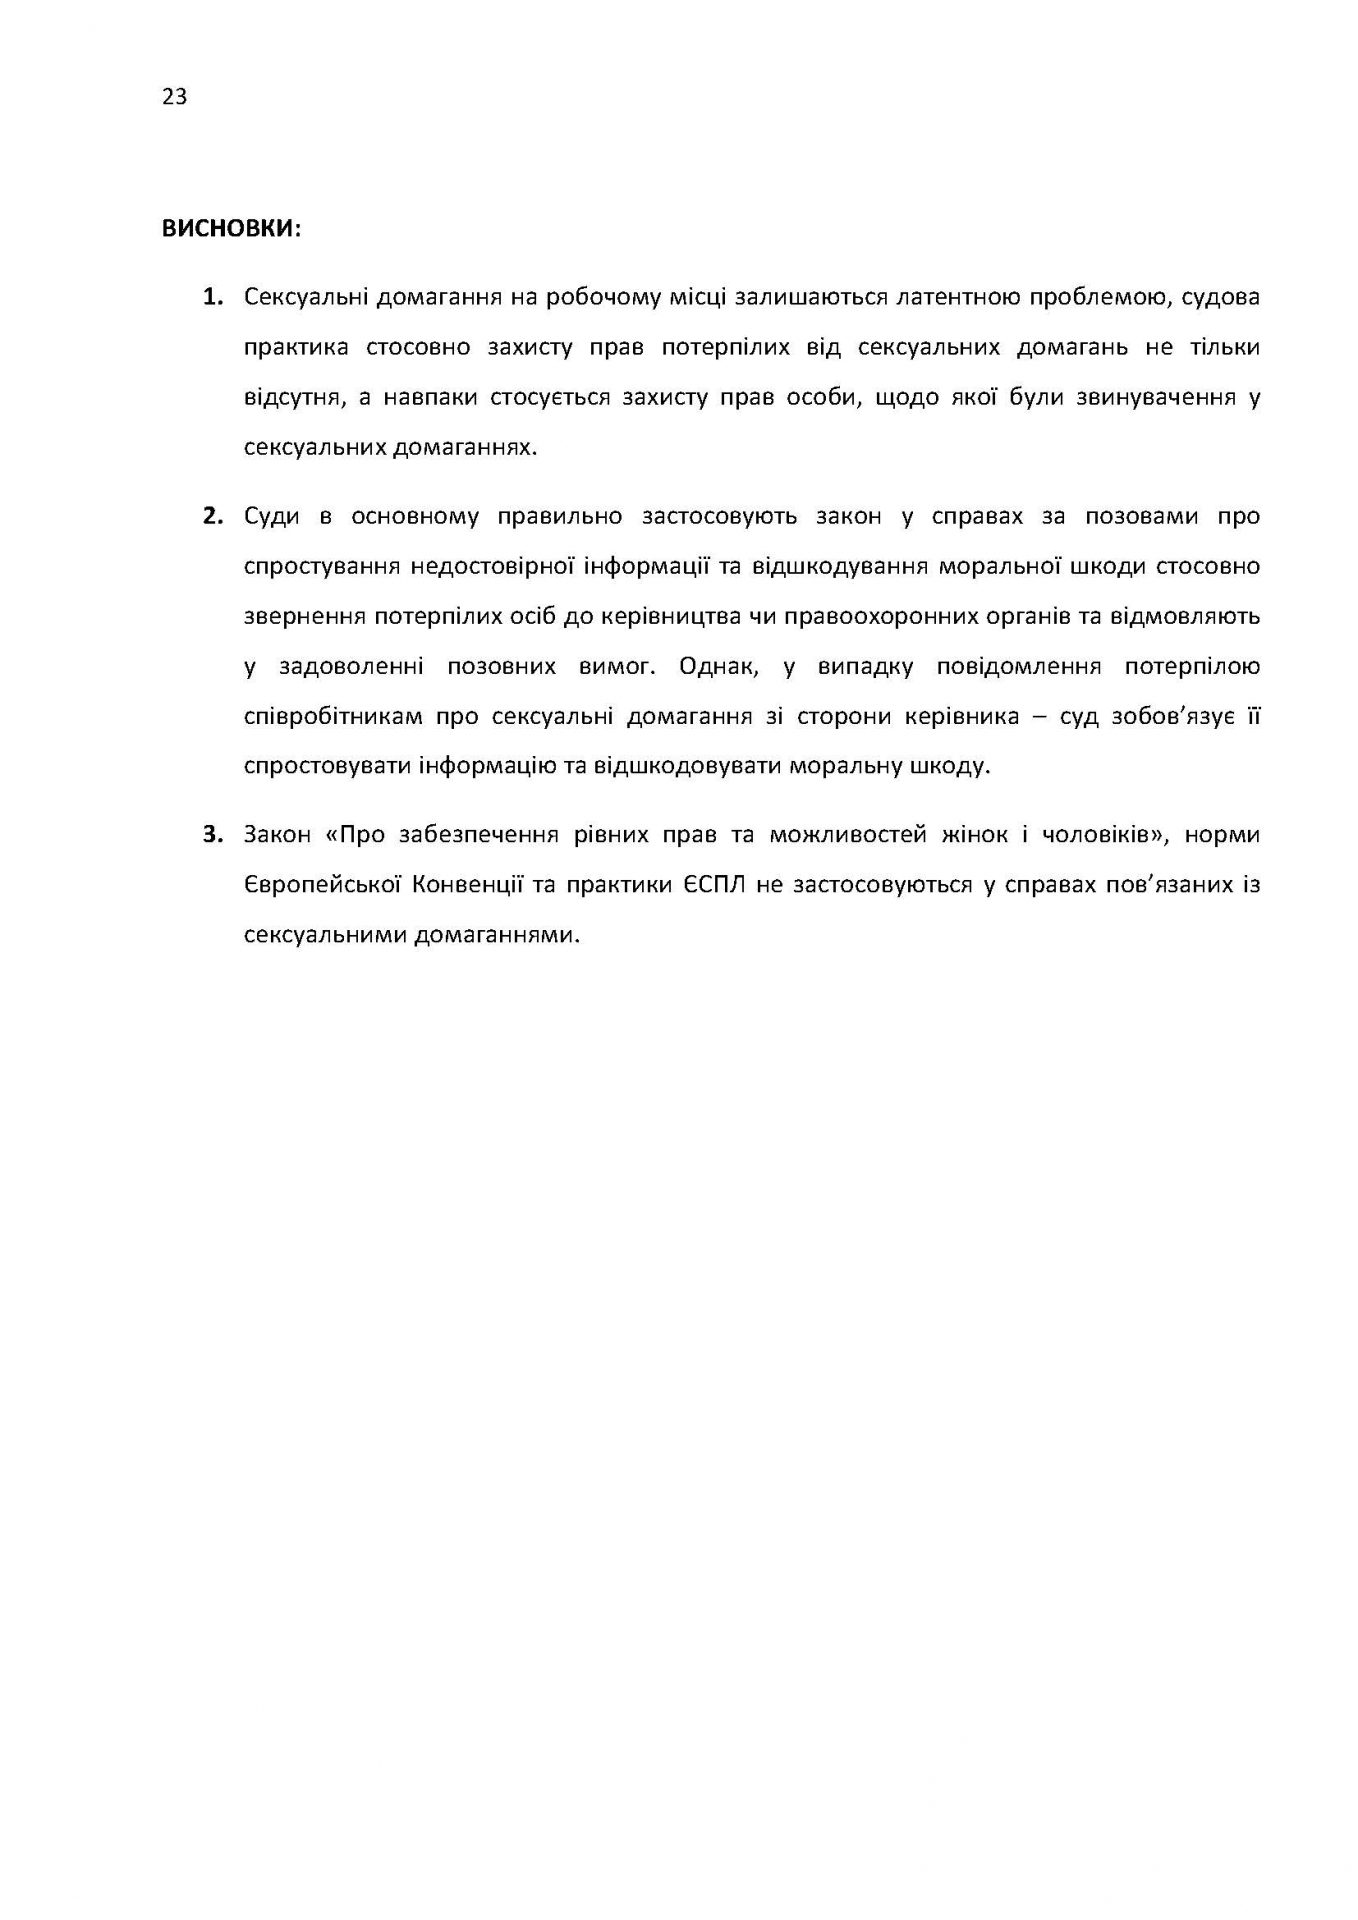 Draft Report monitoring print USAID_Страница_23